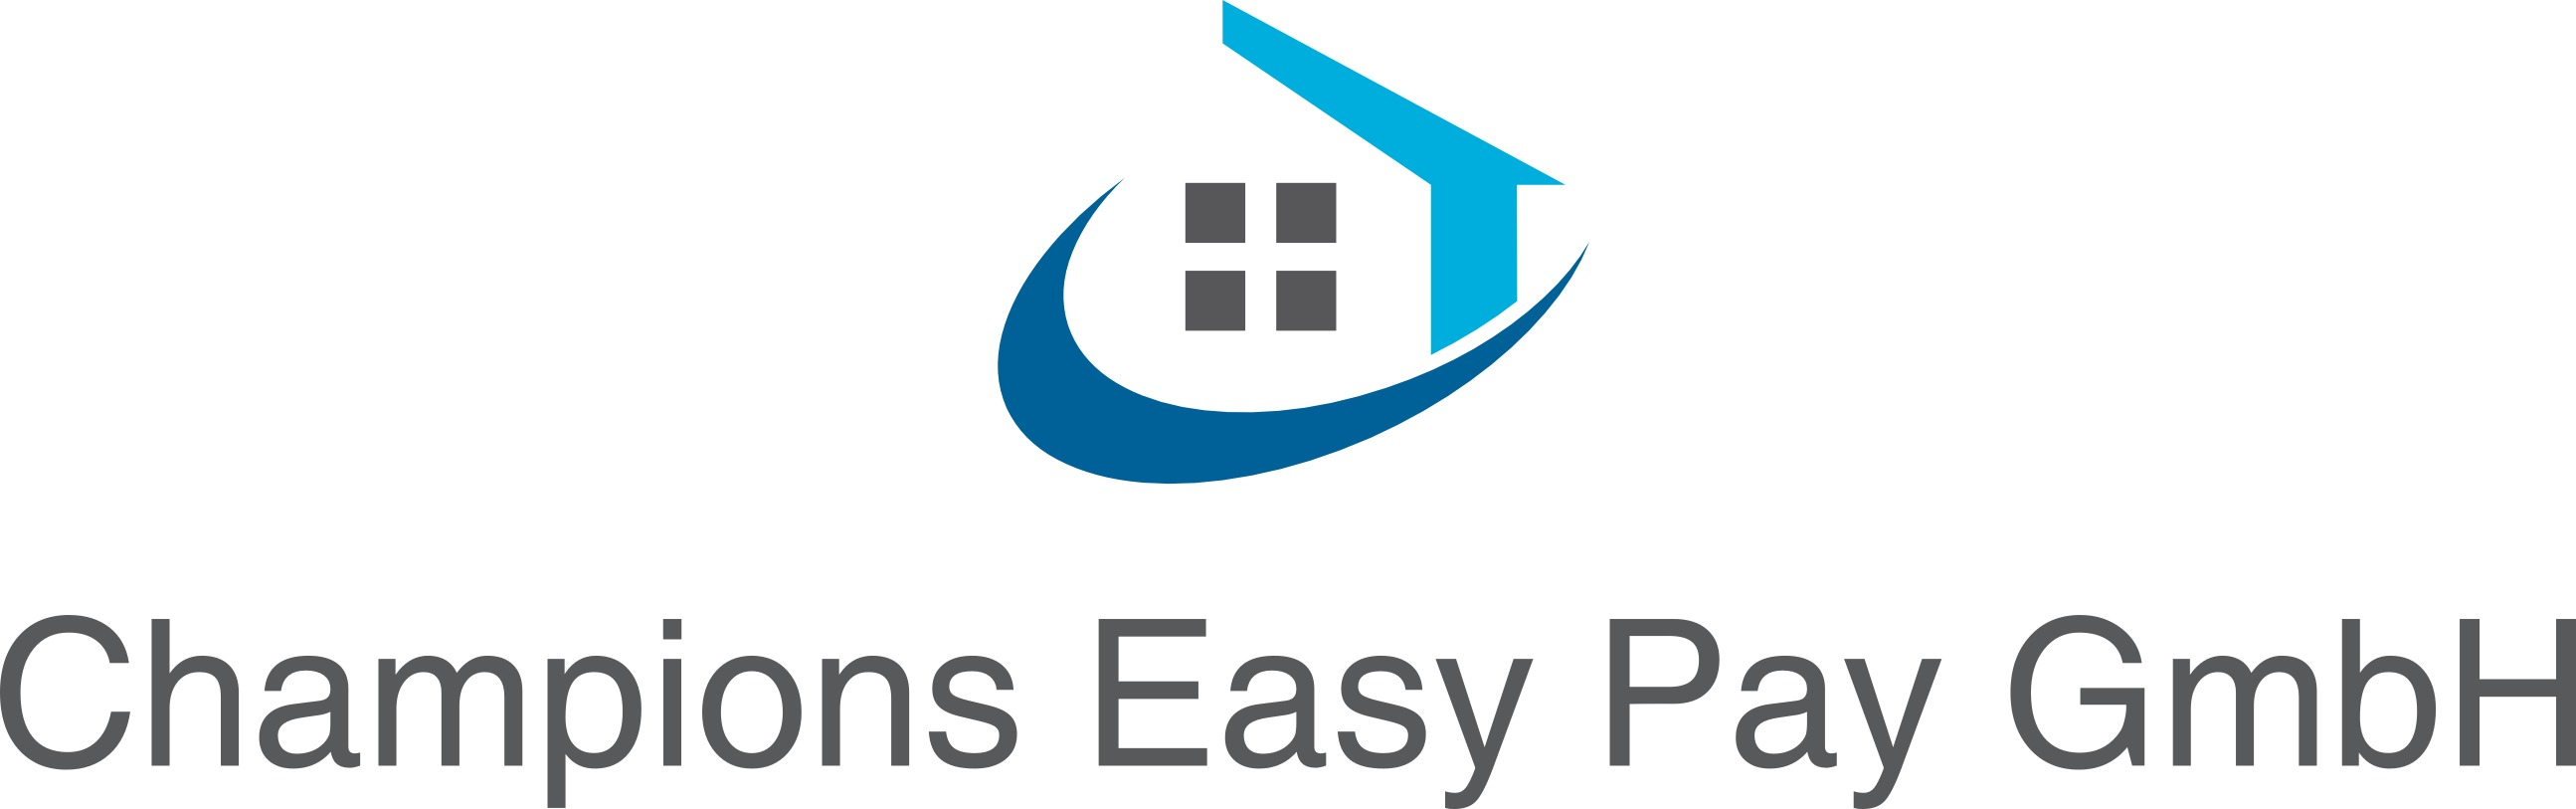 Champions Easy Pay GmbH